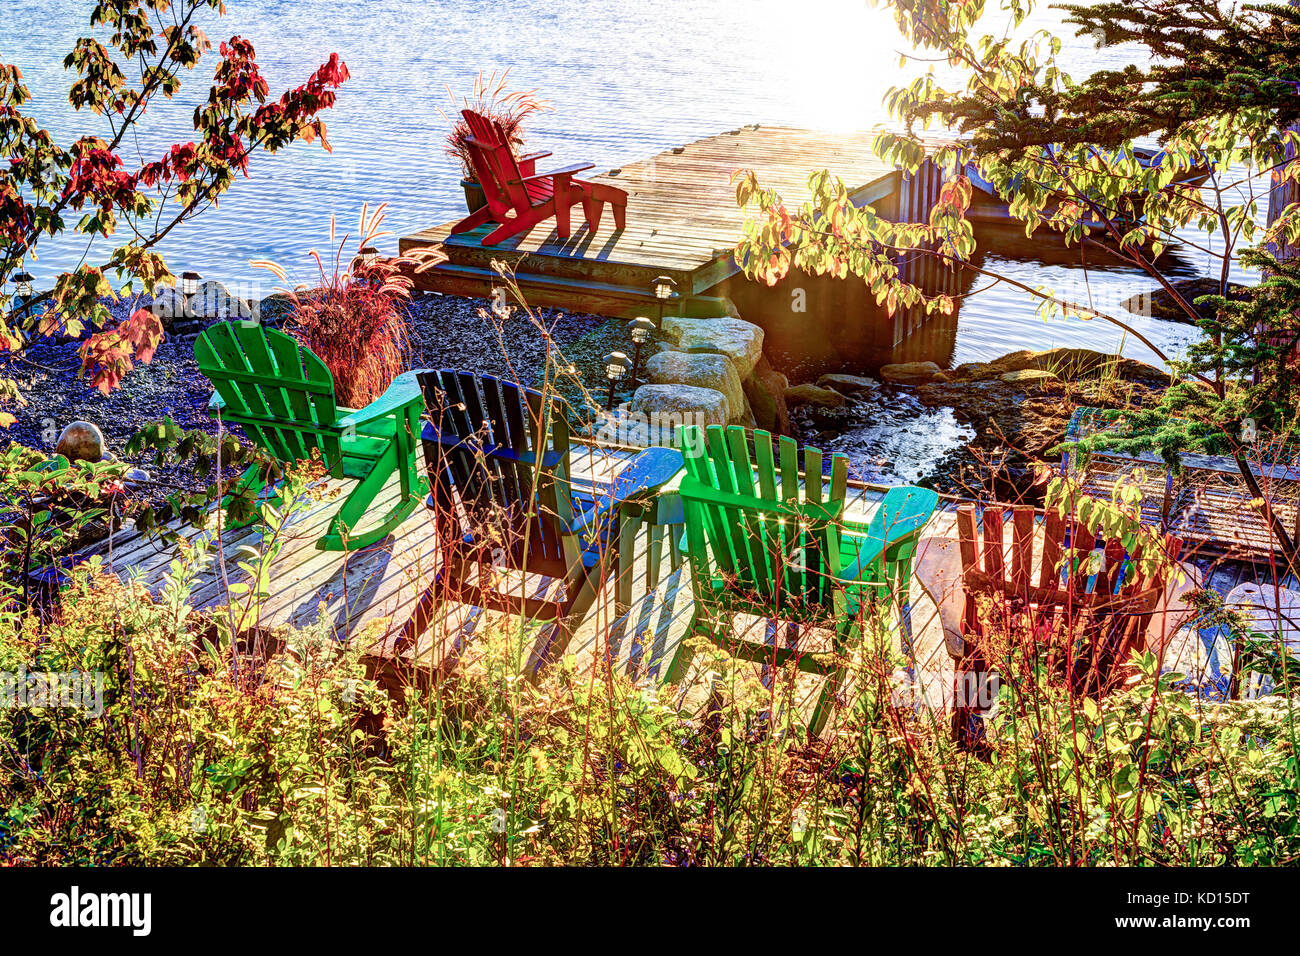 Lawn chair on wharf, Shad Bay, Nova Scotia, Canada - Stock Image